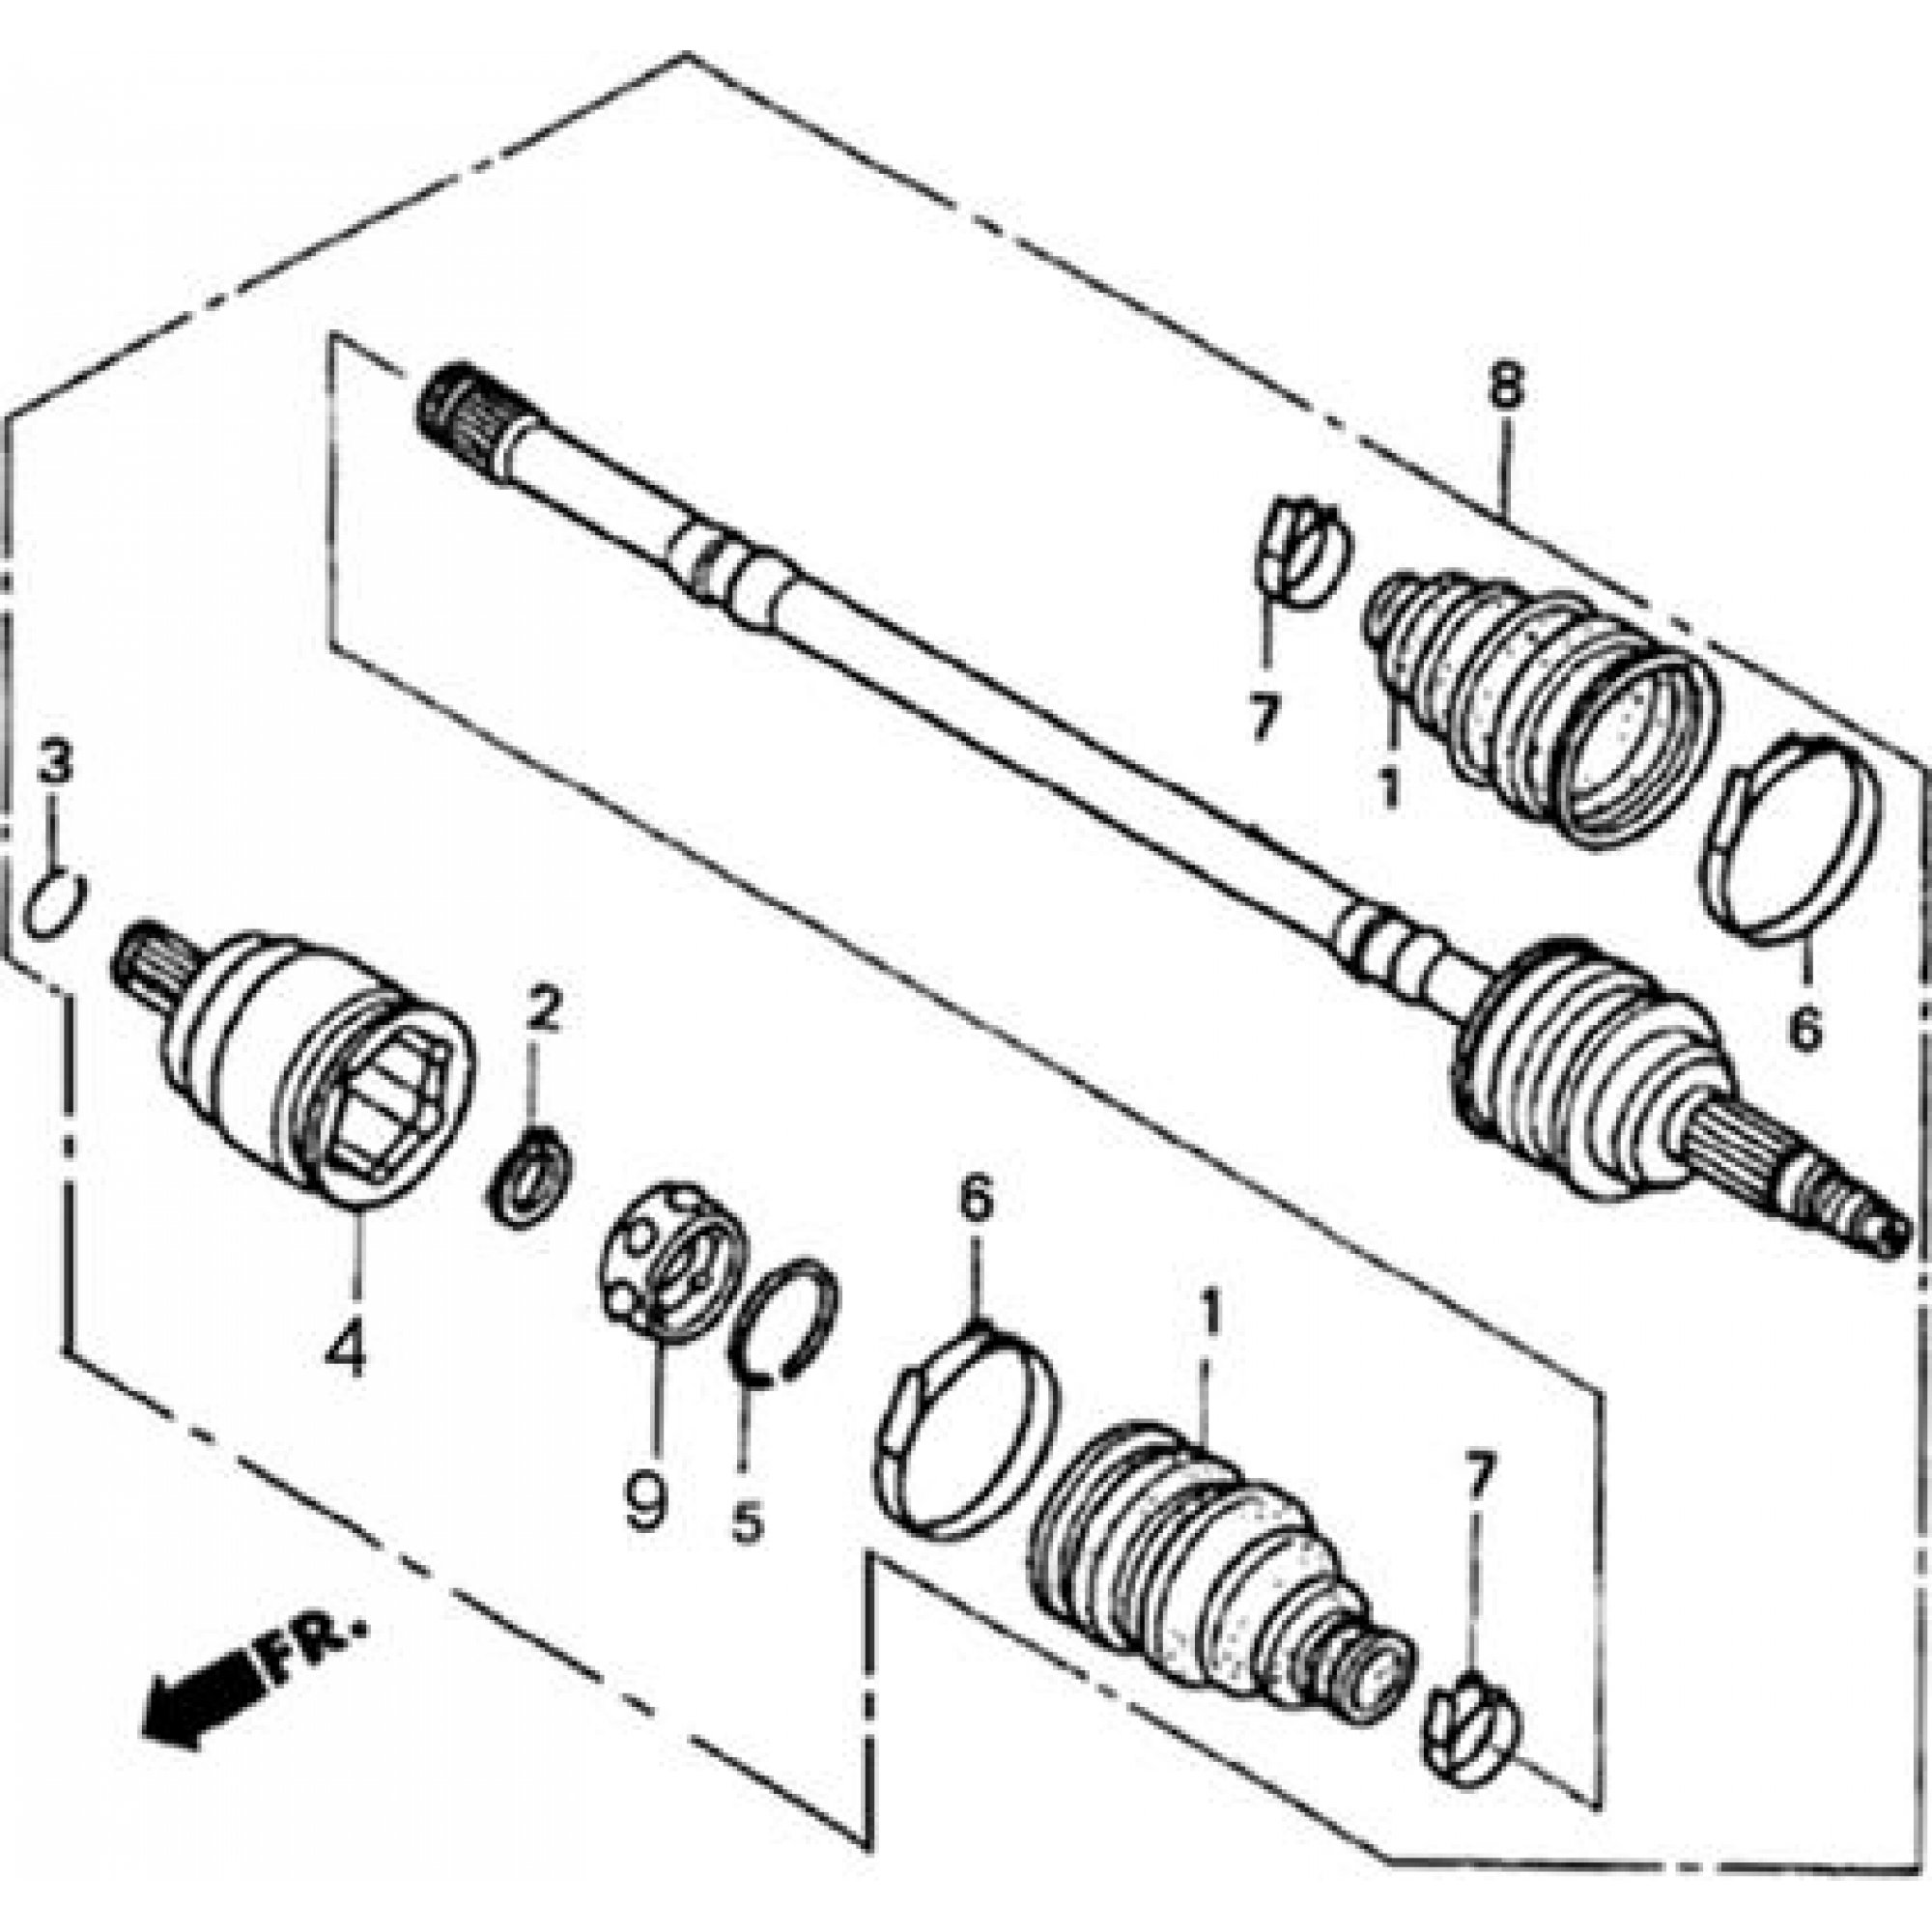 4WD FRONT DRIVE AXLE